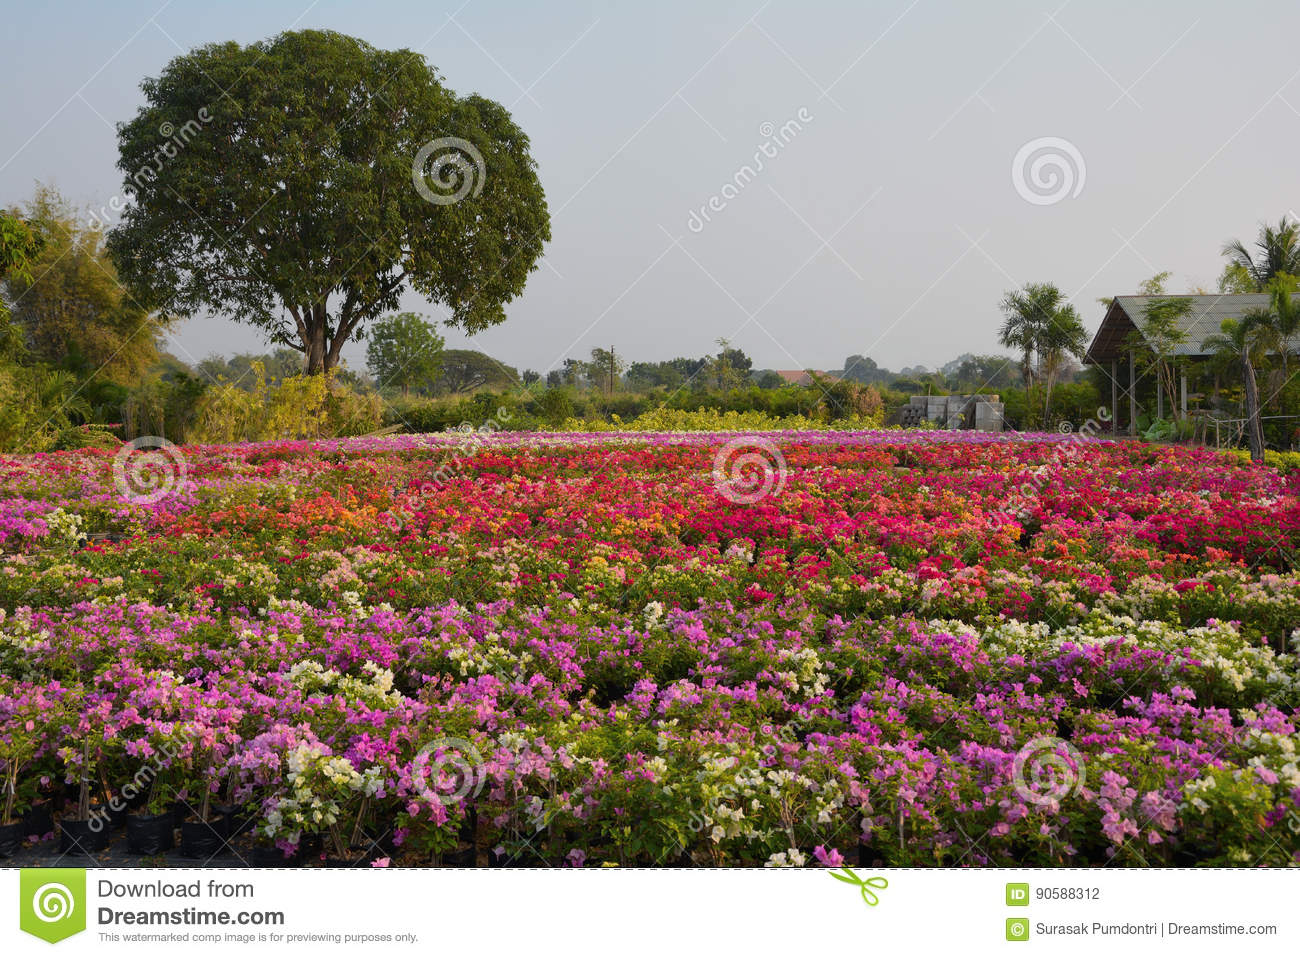 Bougainvillea Flowers At The Garden, Stock Photo - Image of plant ...